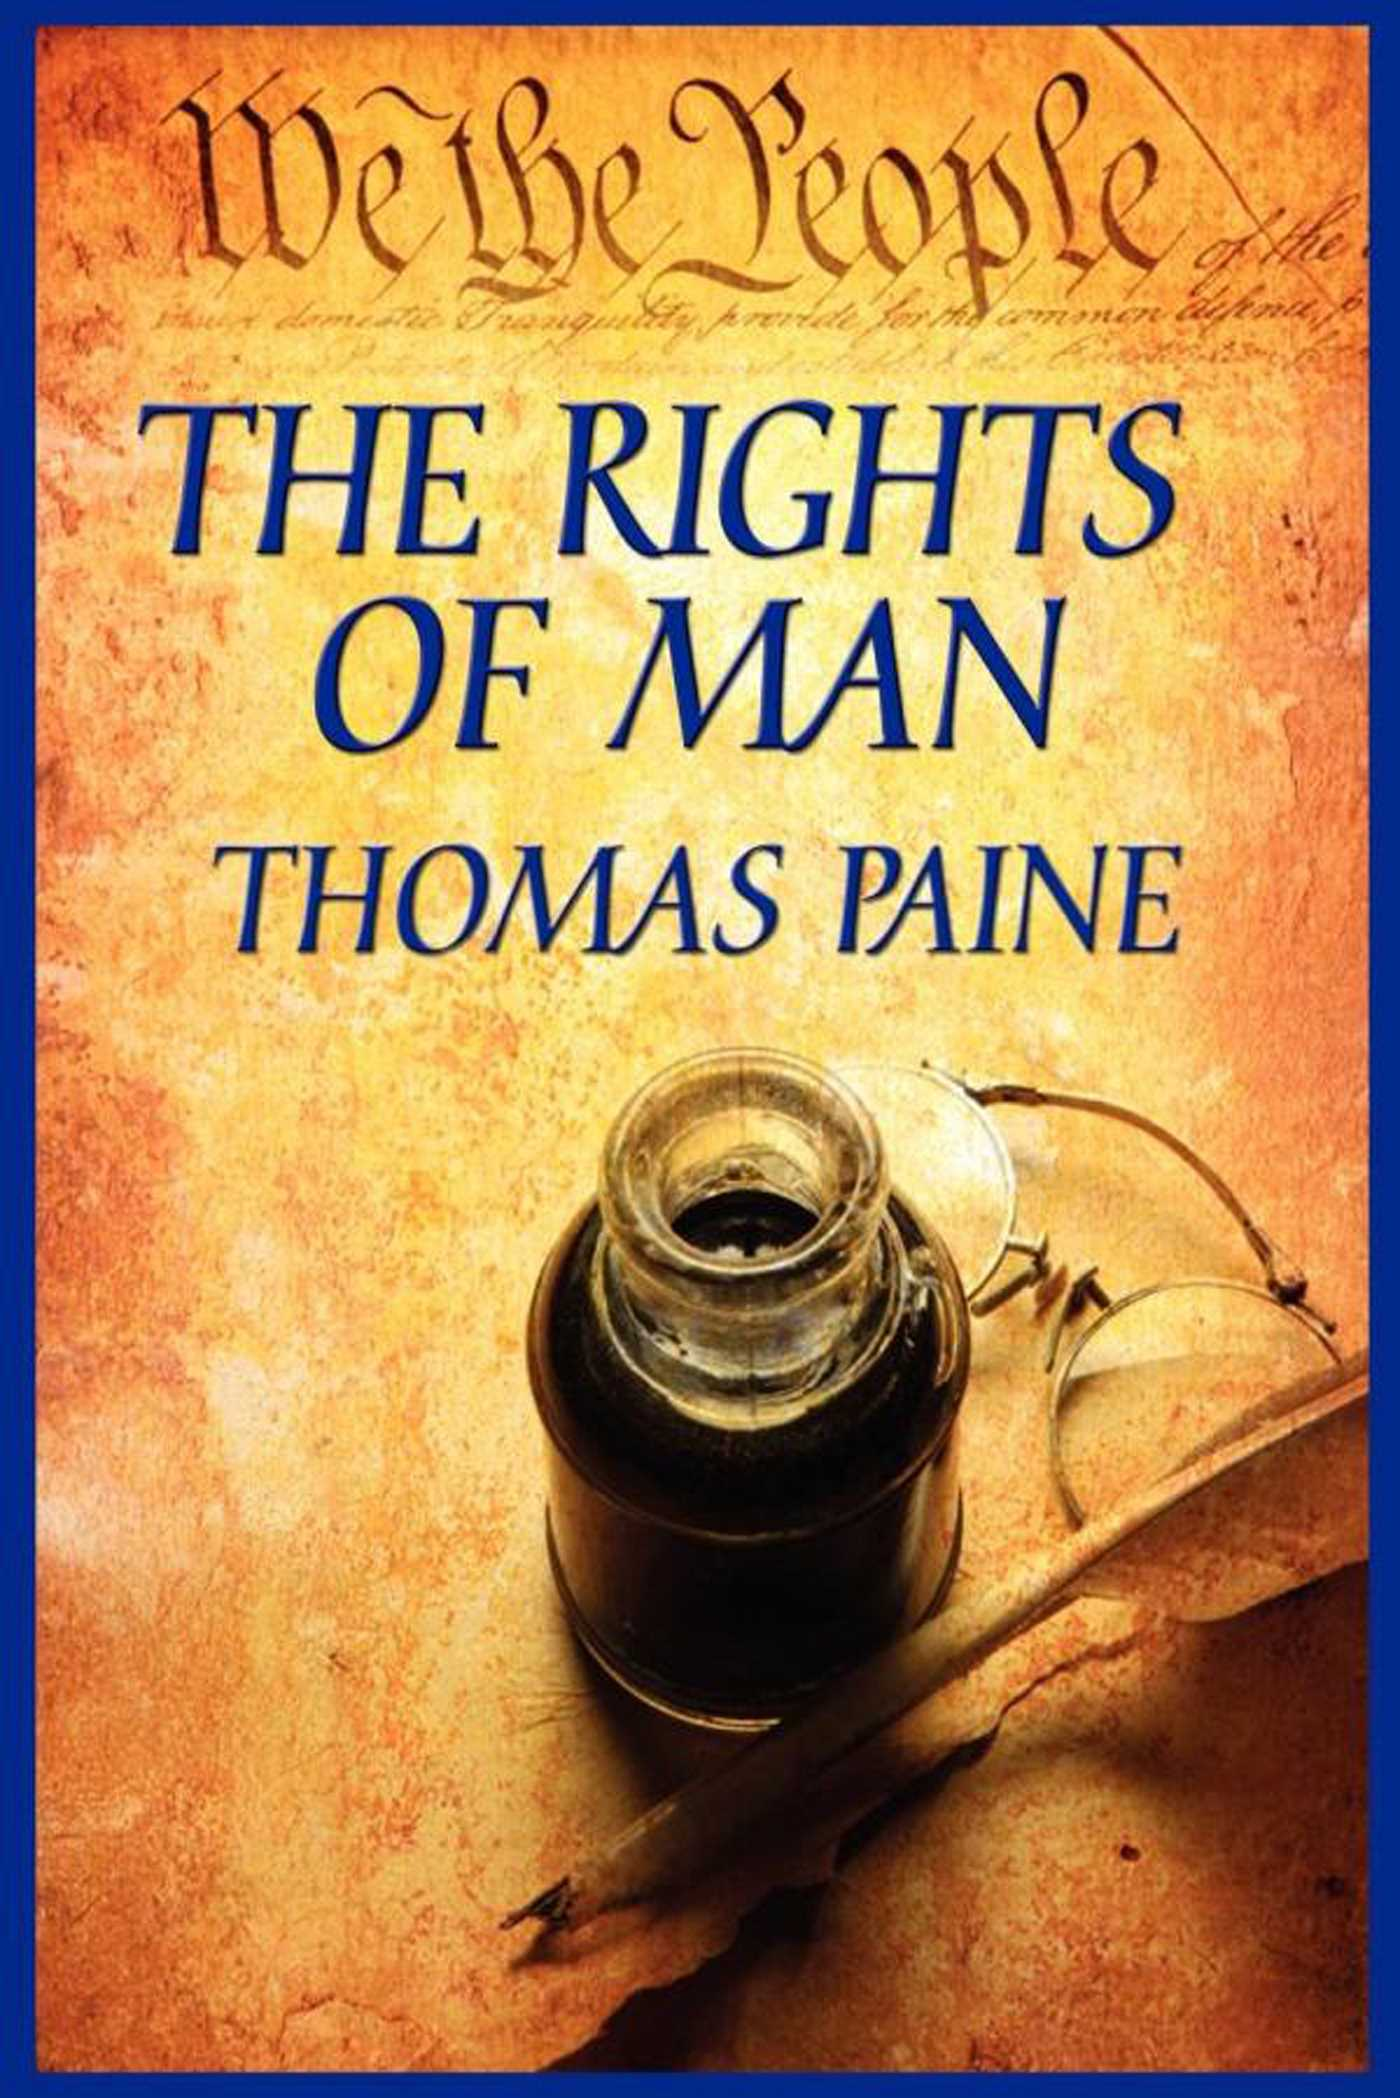 Thomas paine rights of man essay writer